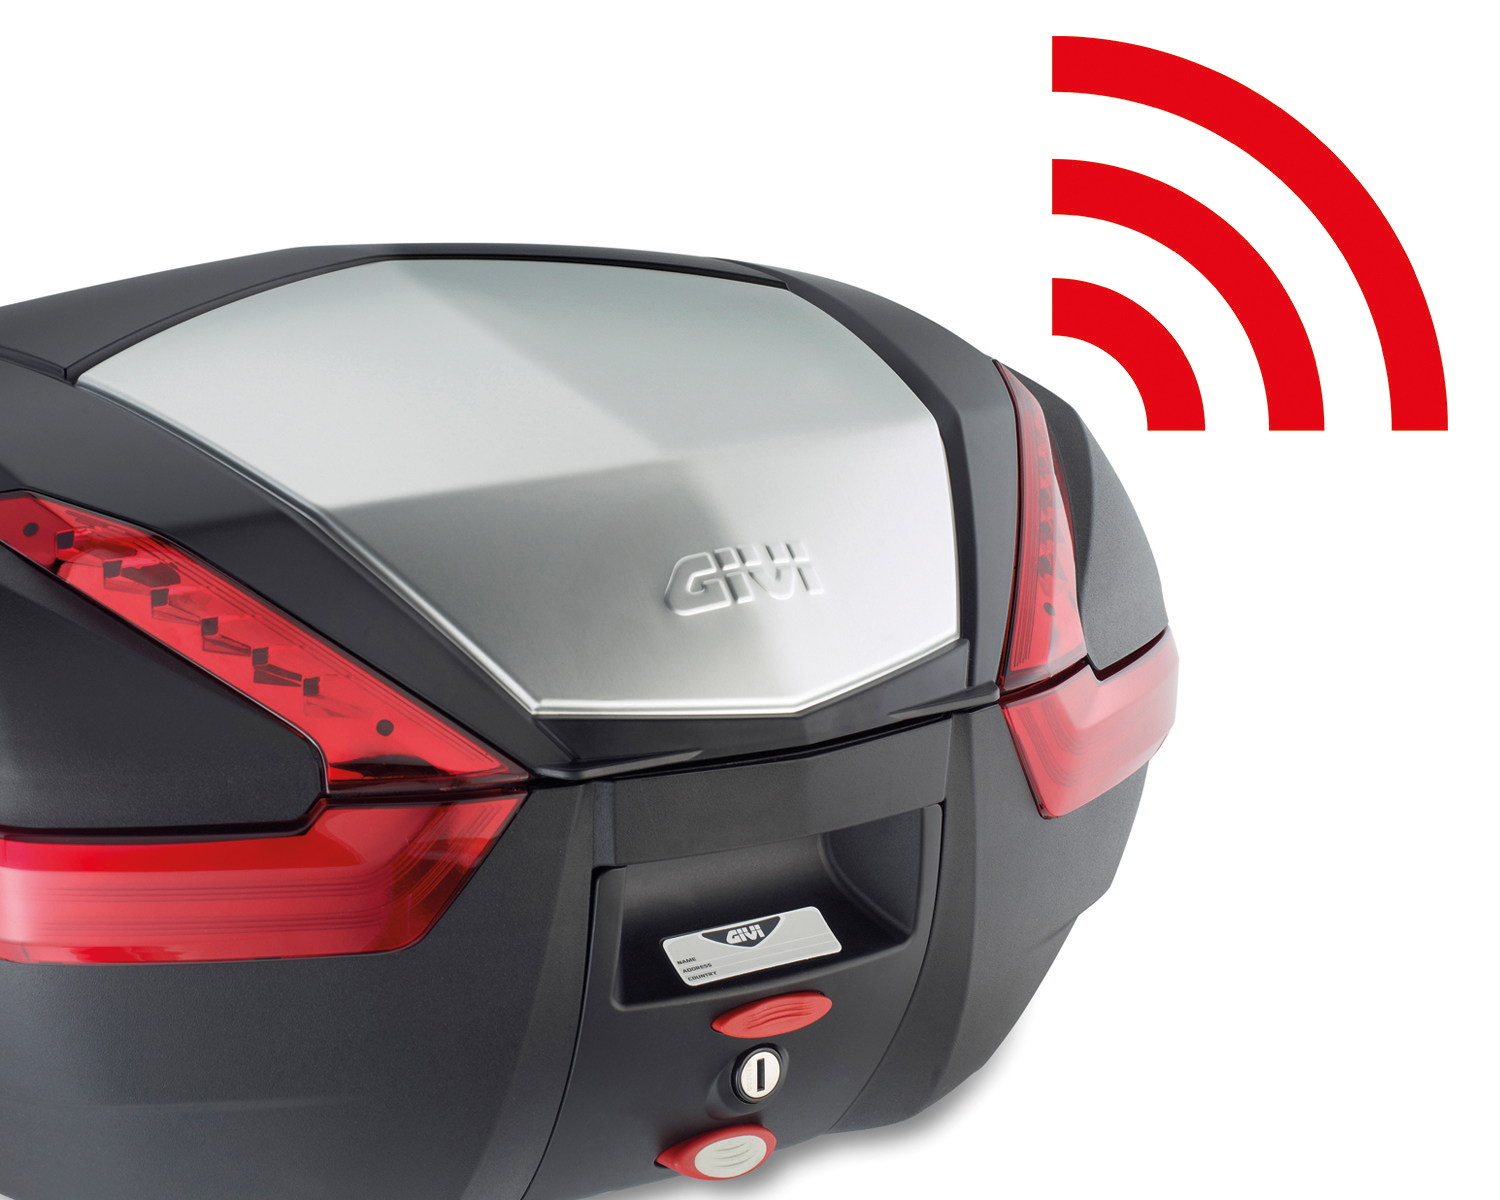 Givi - Opening kit Keyless 2.0 for V47, V40, B47 Blade, B37 Blade, B360 cases. It allows the opening of the case through an app to be installed on your device, downloadable from the App Store and Google Play.